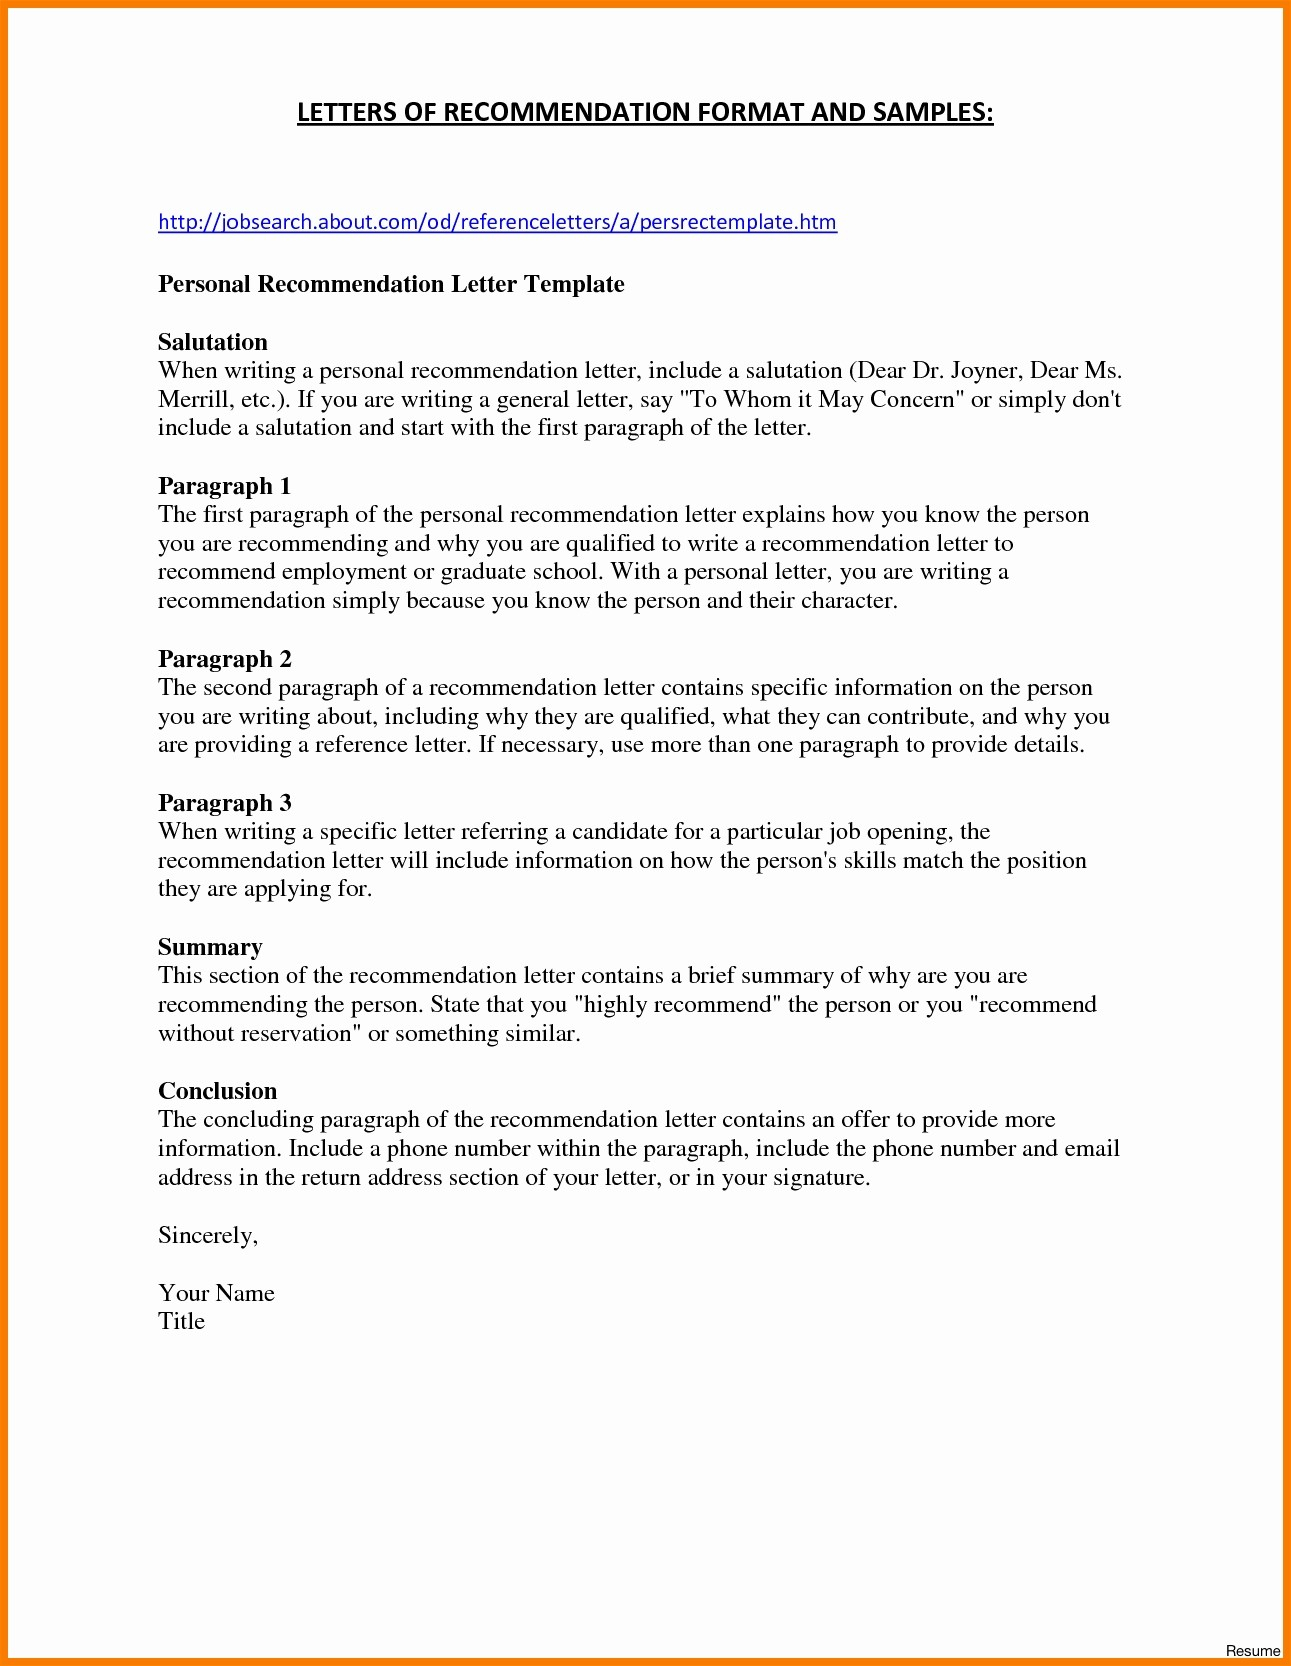 Employment Rejection Letter Template - Rejection Letter to Job Fer New Rejection Letter to Job Fer